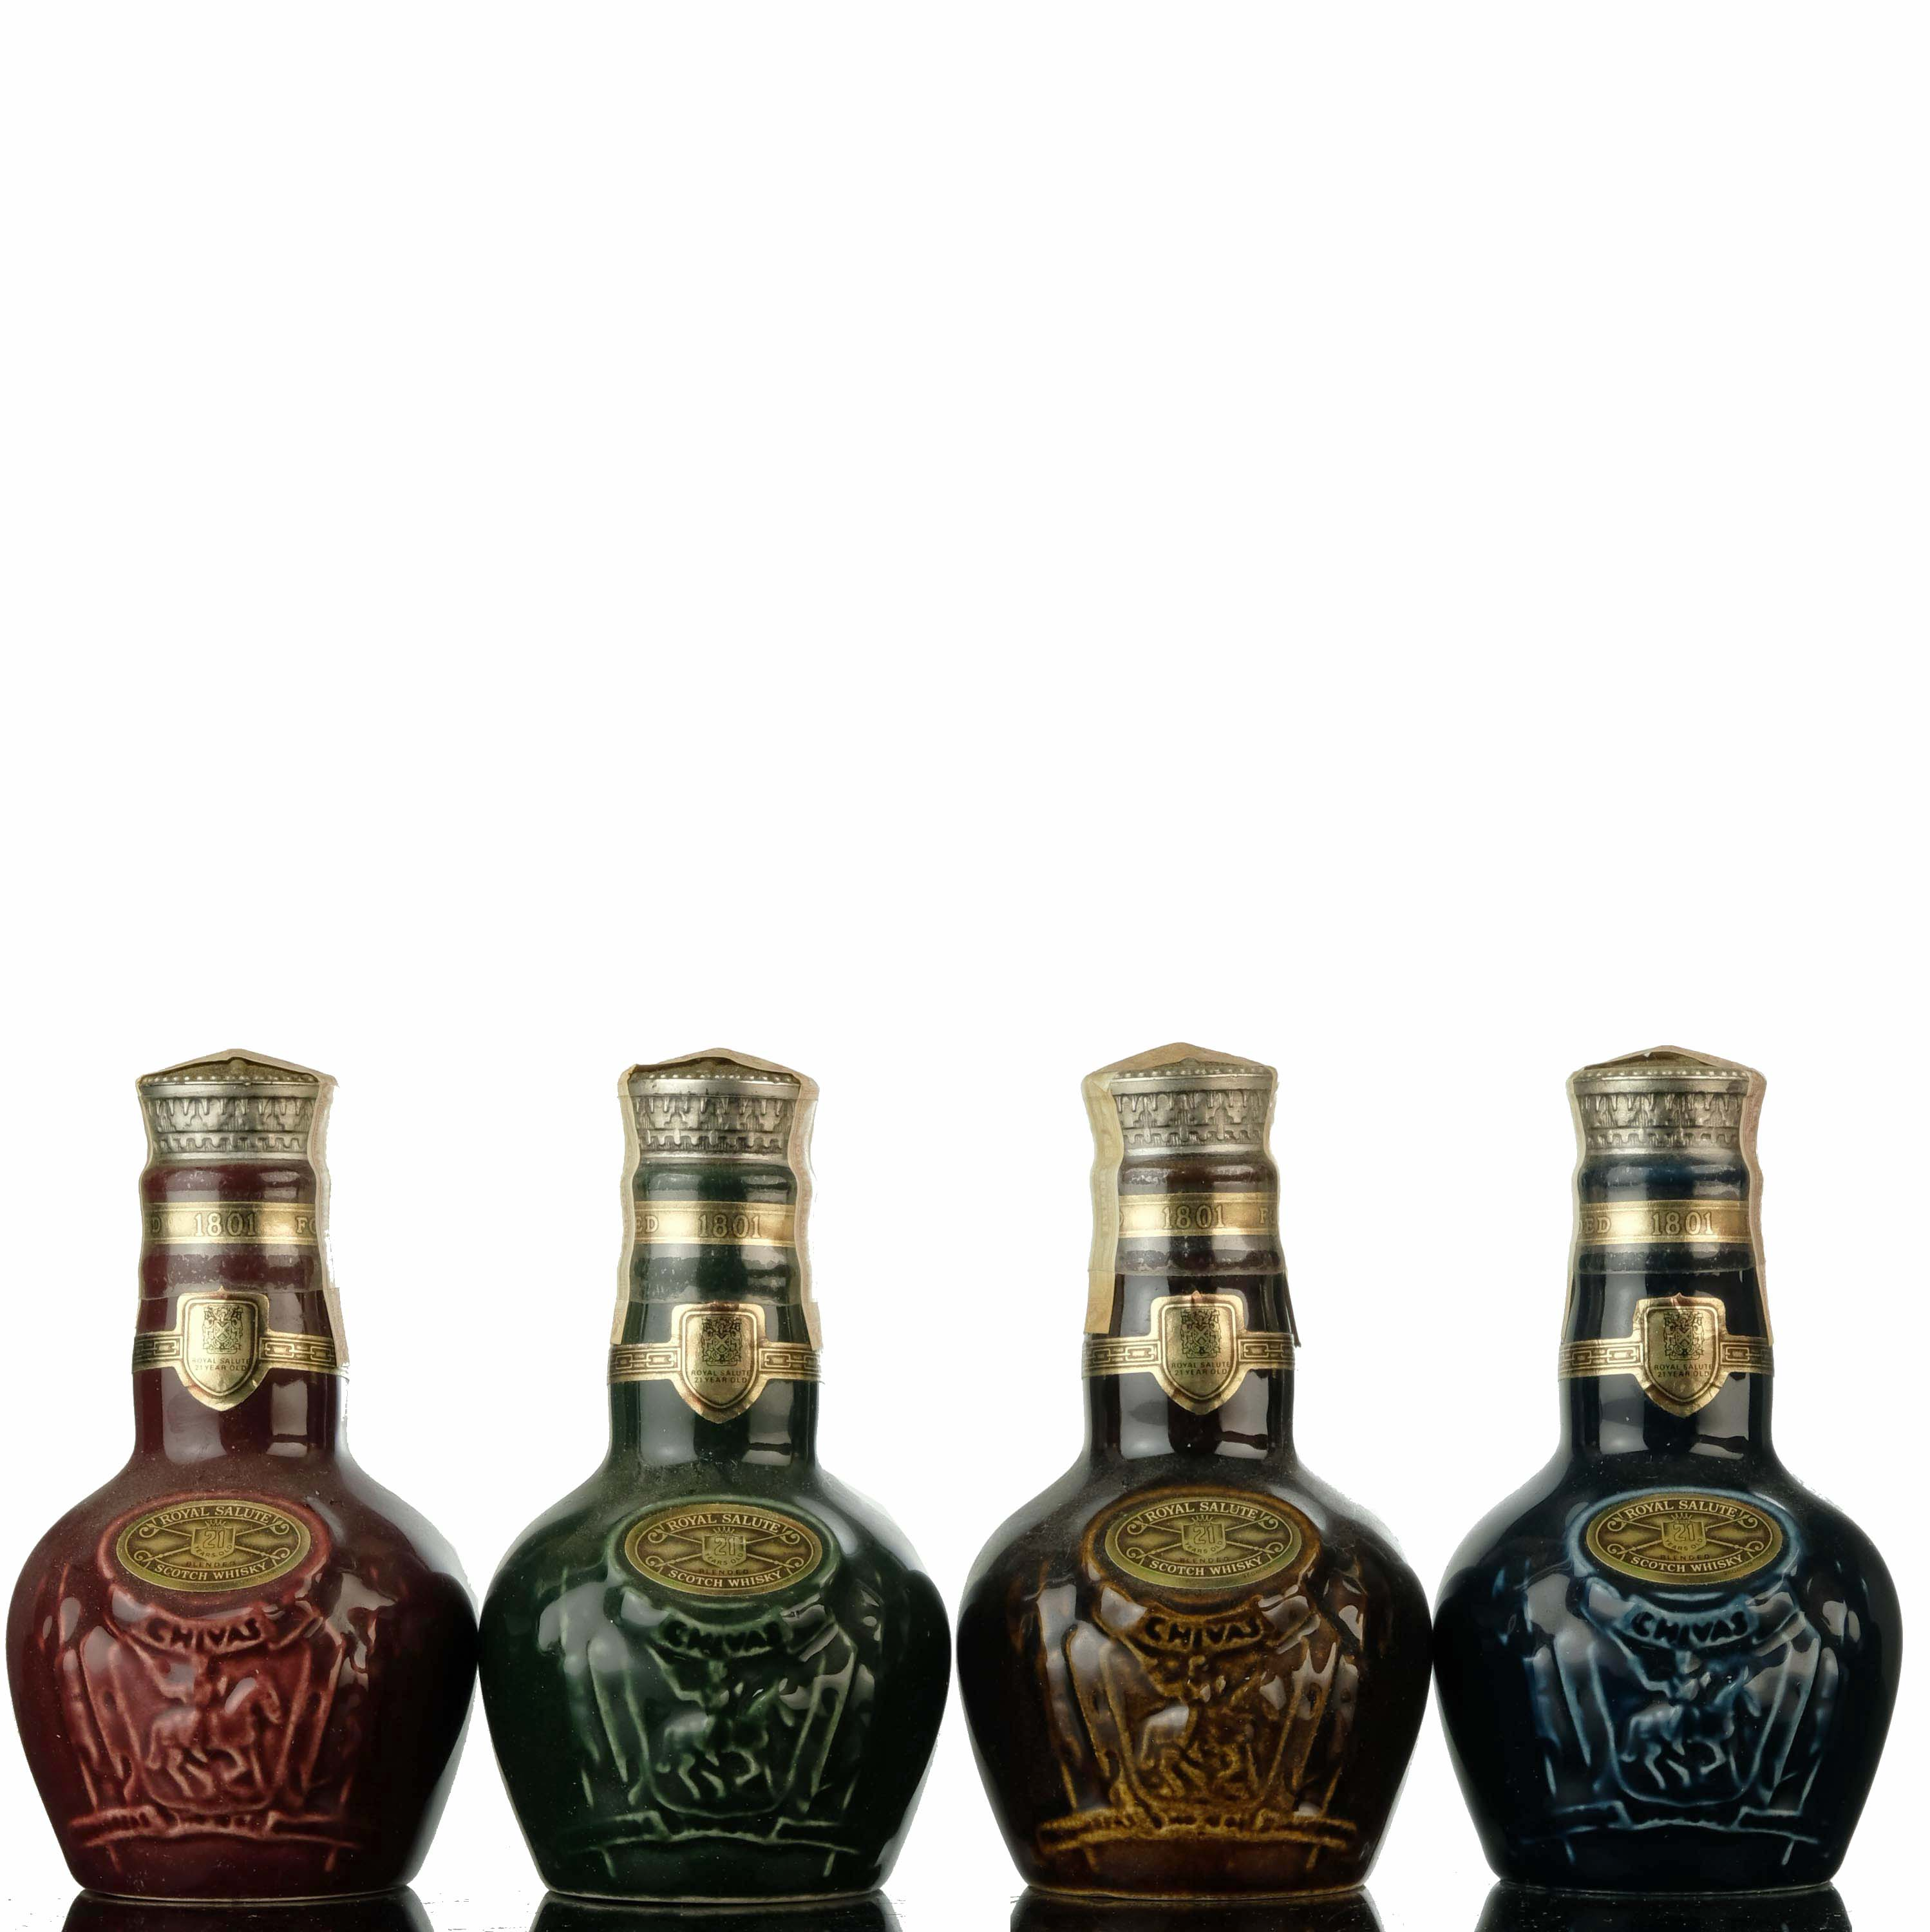 4 x royal salute 21 year old - miniatures